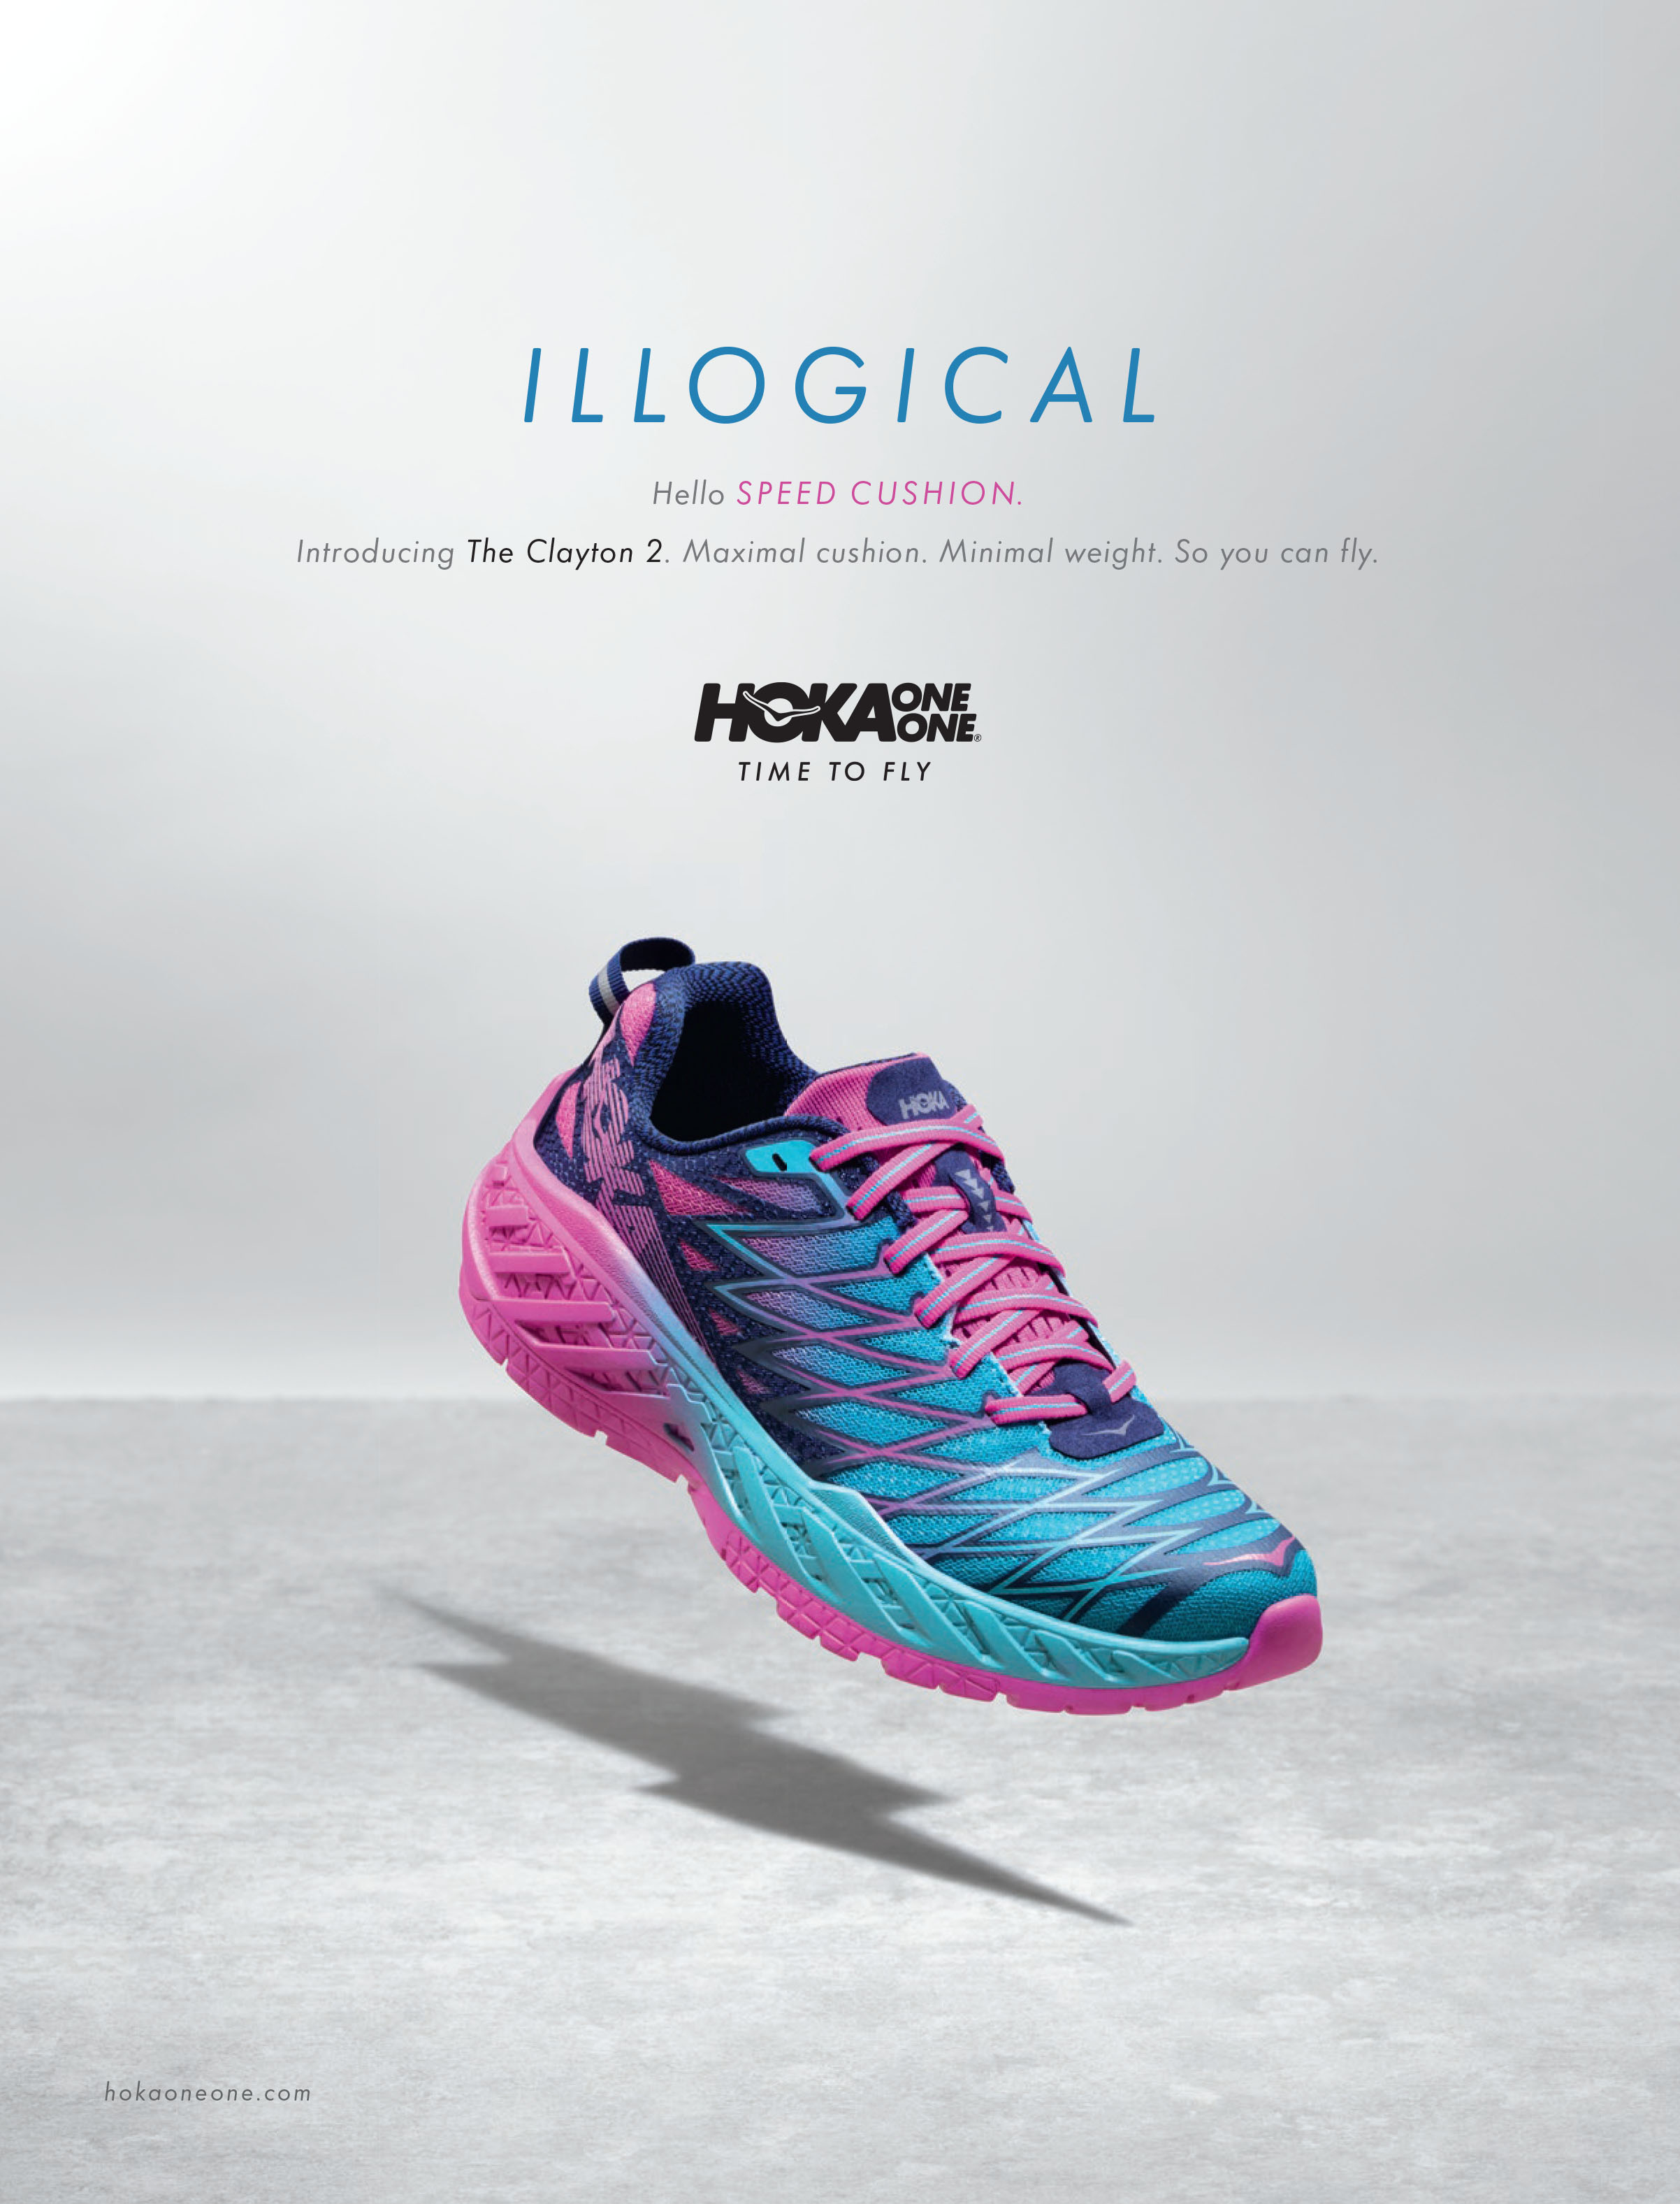 footwear-sportswear-photographer-hoka